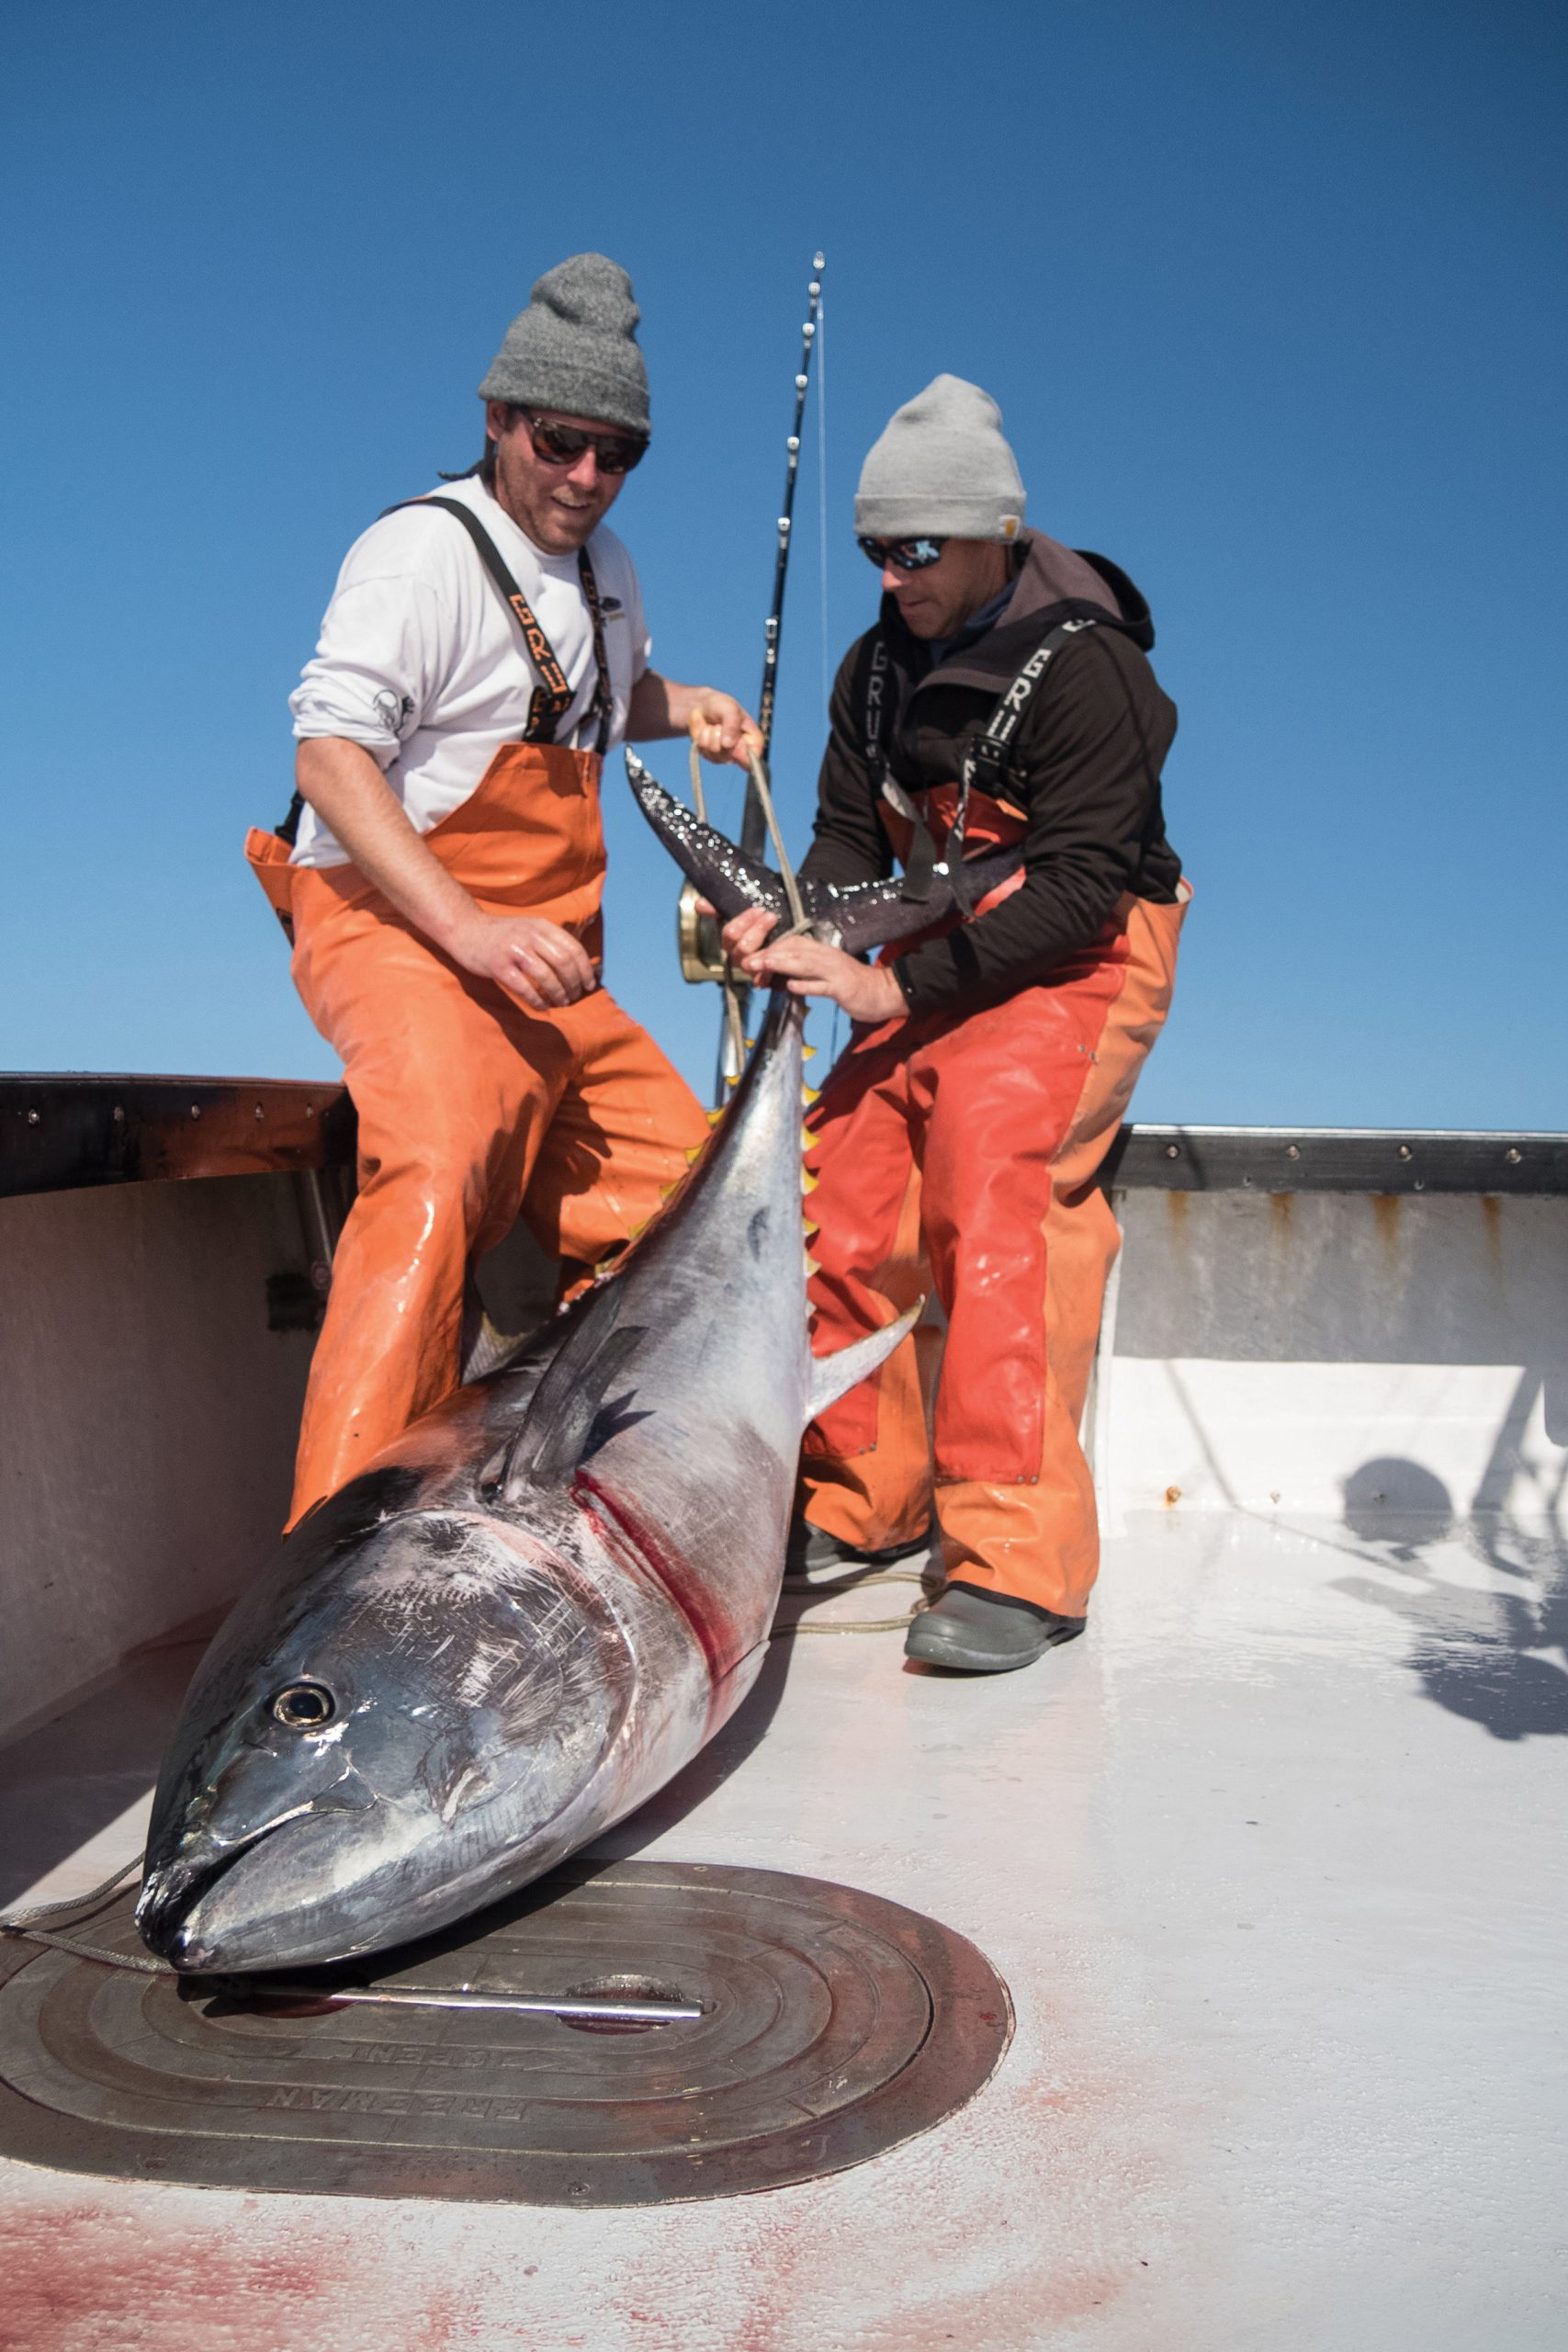 Tuna under 73-inches, like this one held by Lange (left) and Clothier, can be kept by recreational anglers.